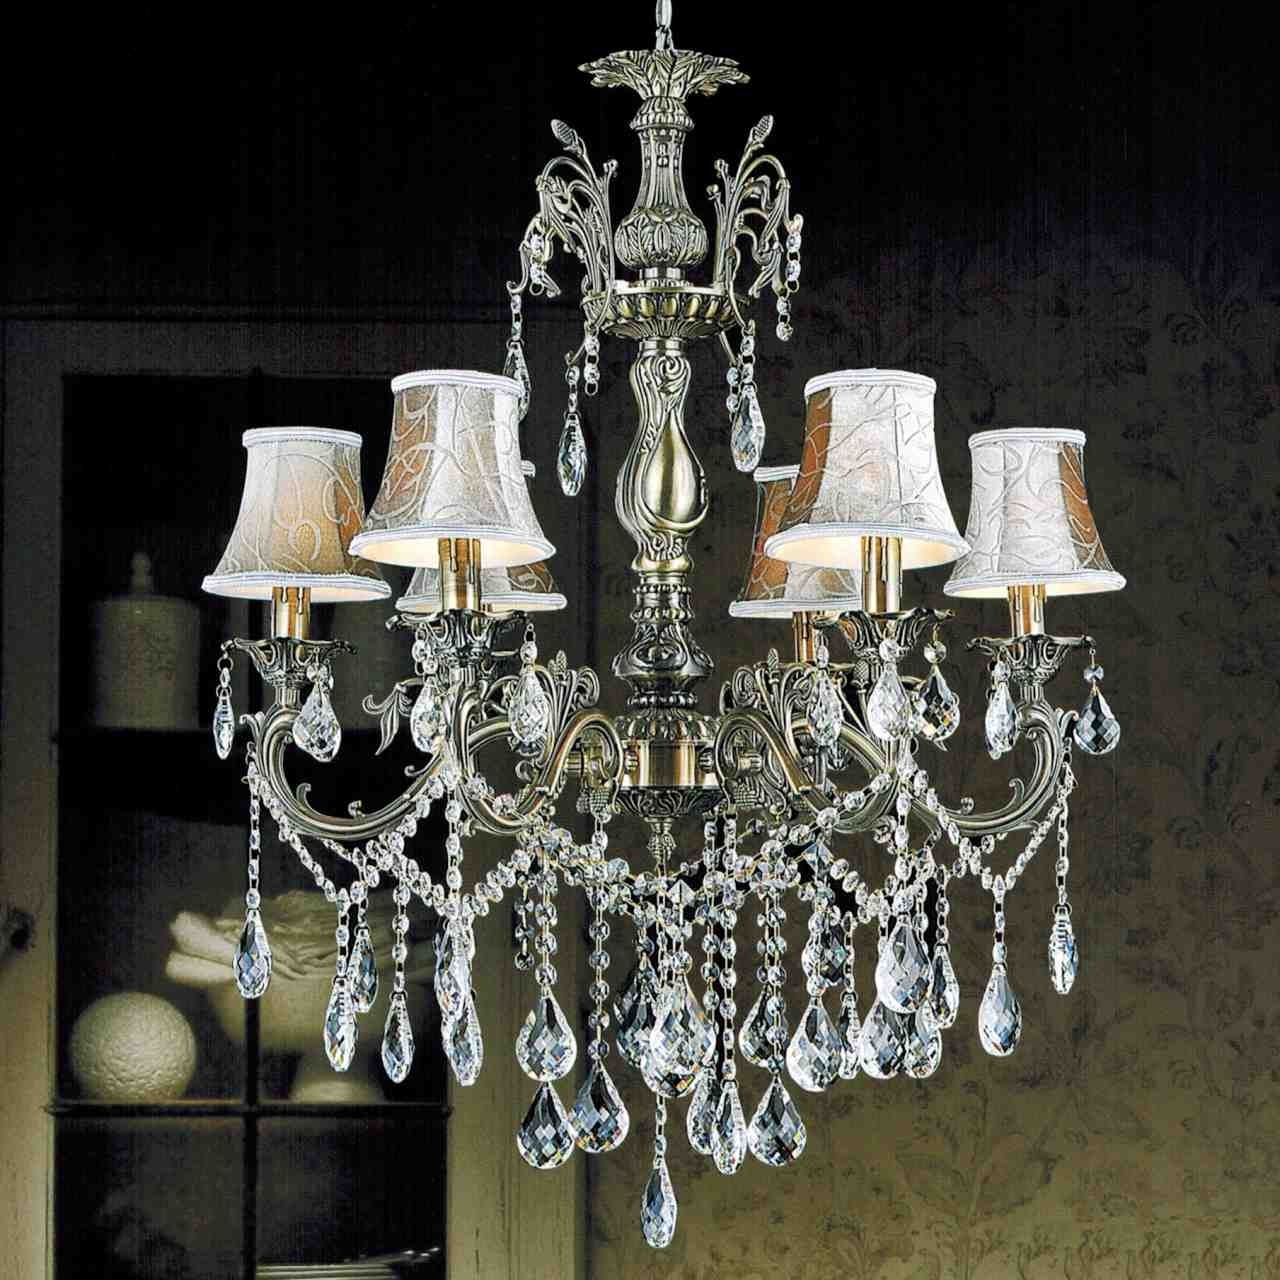 Popular Brizzo Lighting Stores (View 4 of 20)